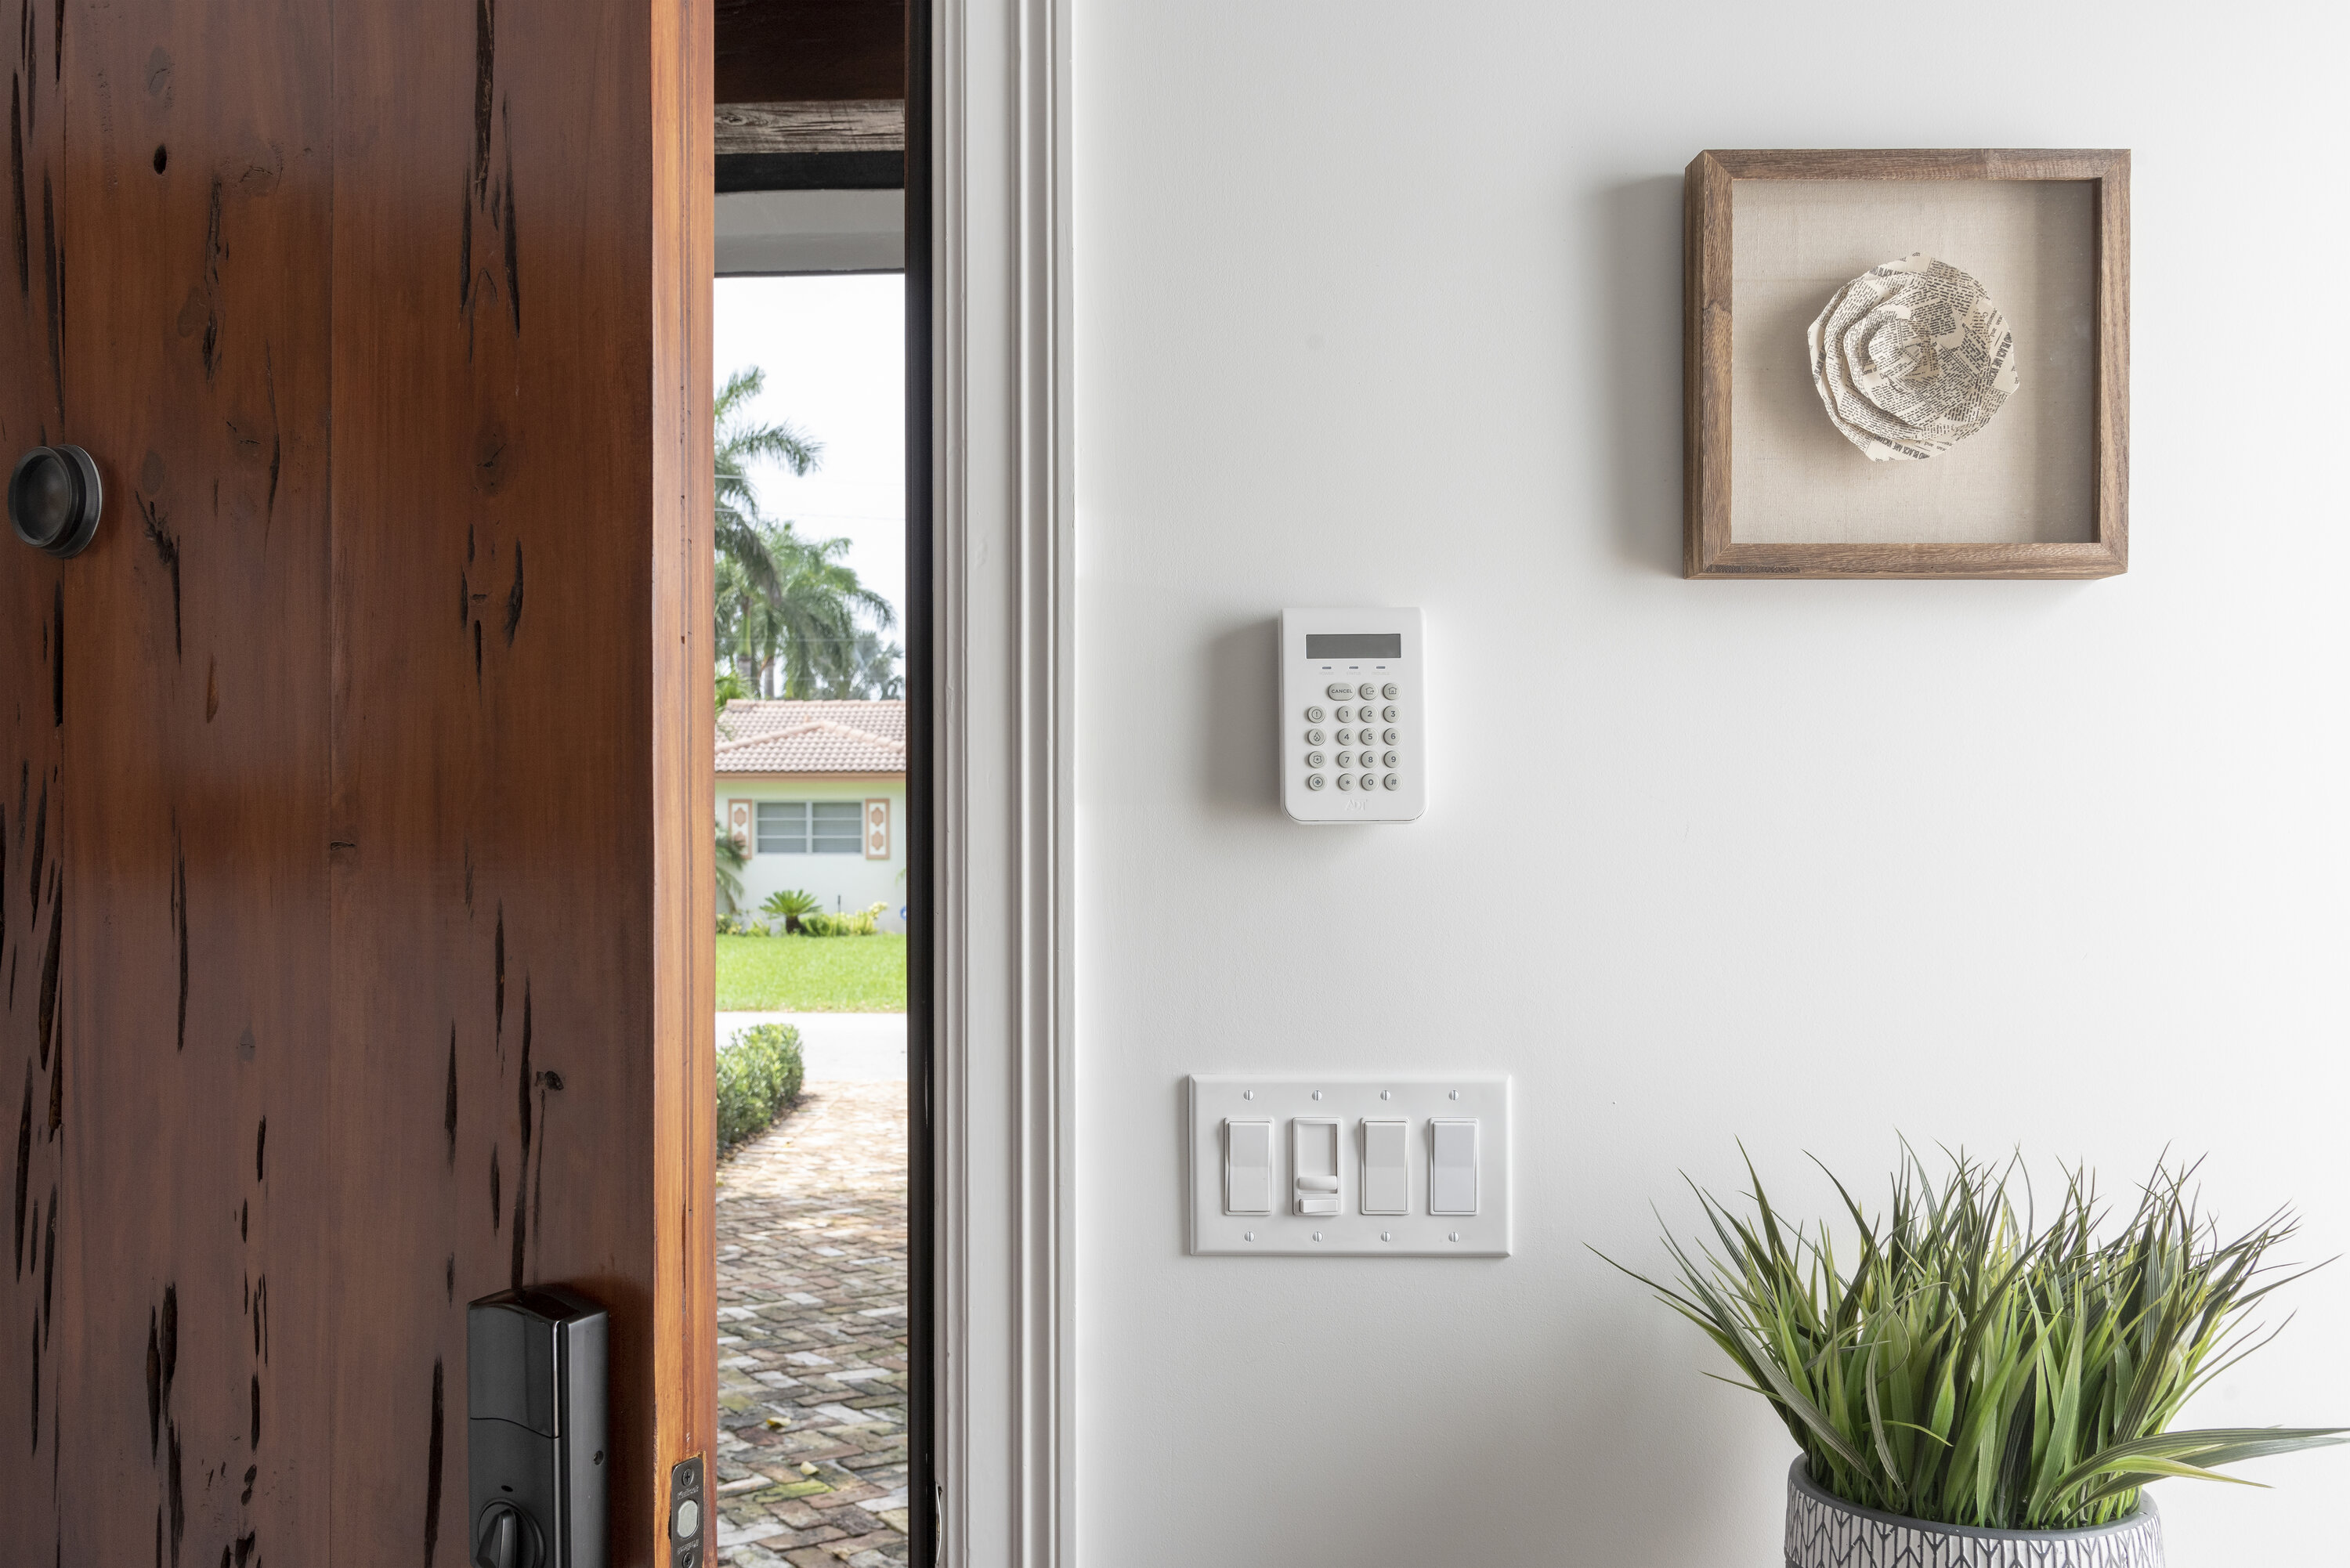 A door is slightly open, and to the right of it is a touchpad security system on the wall.